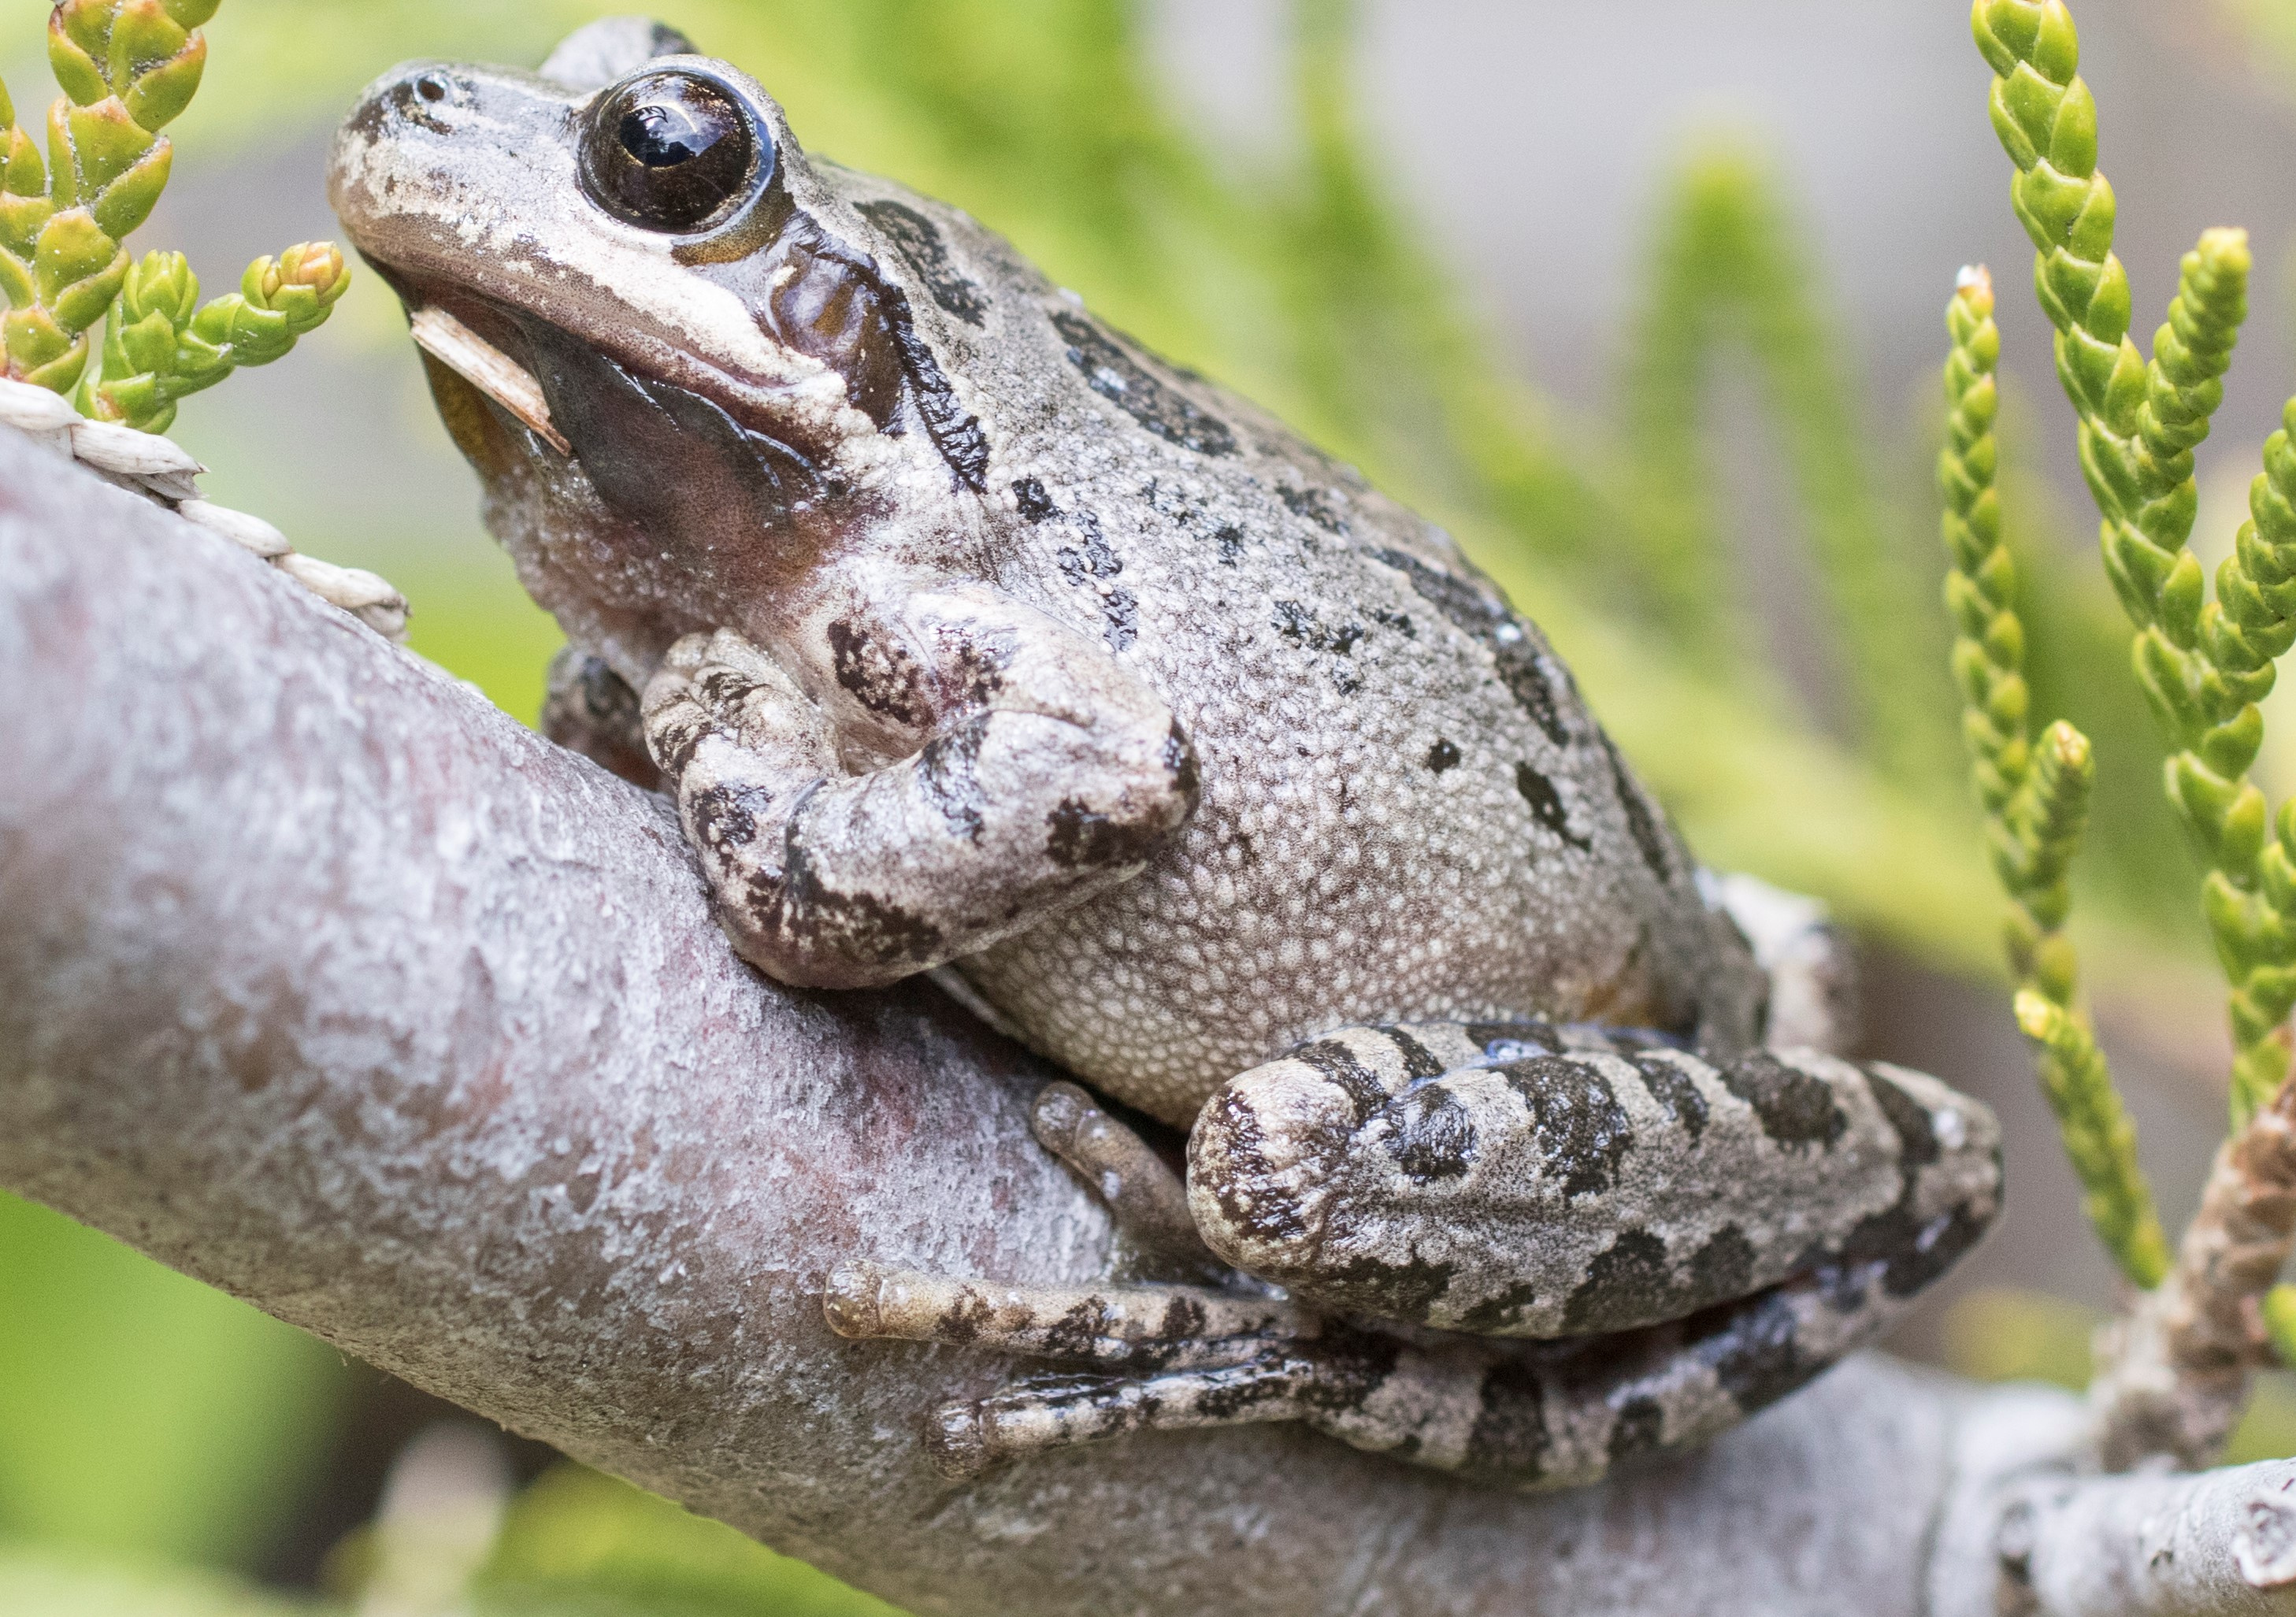 Pacific Chrous Frog